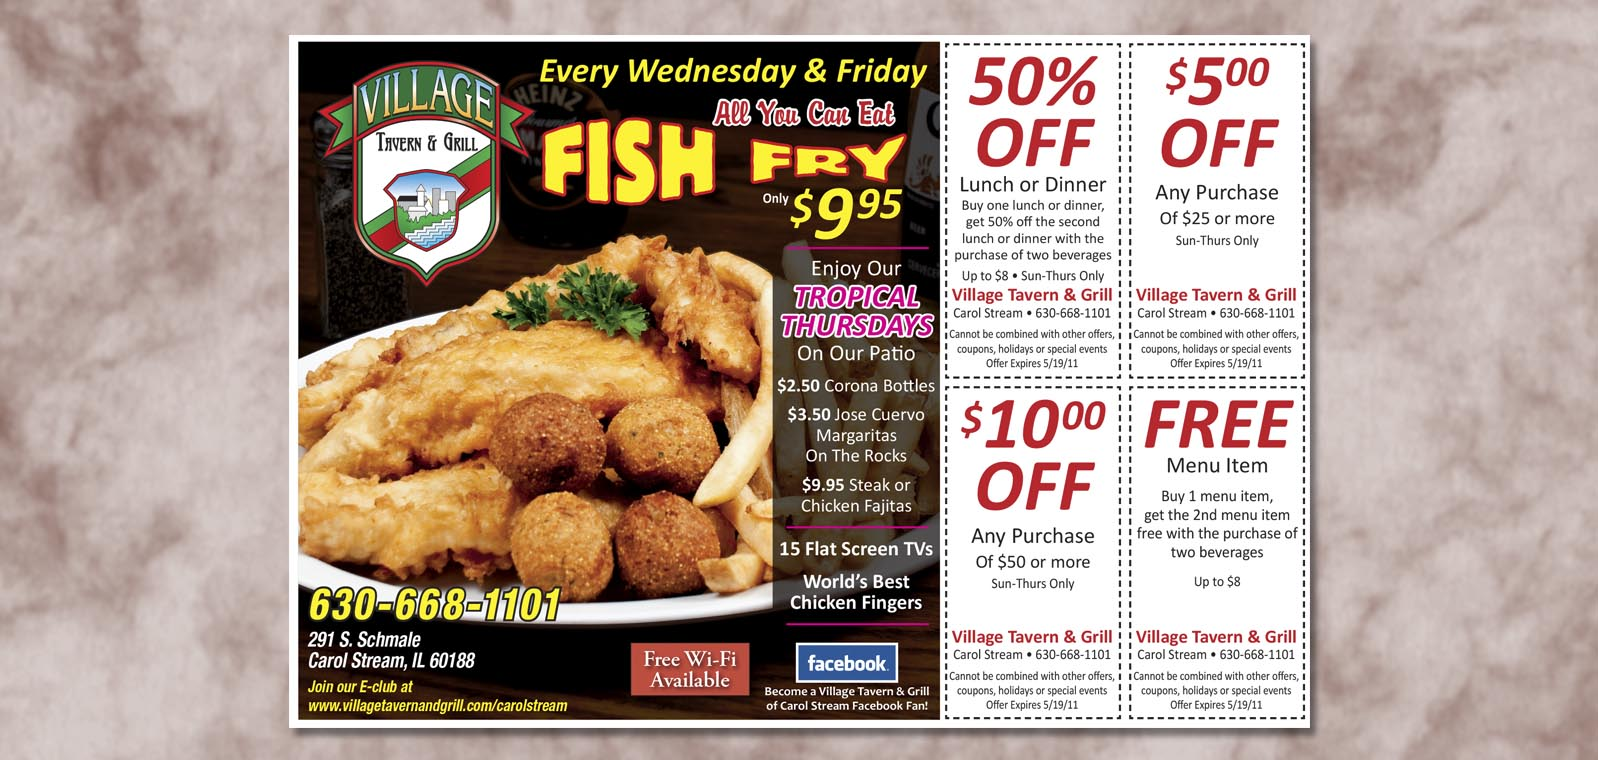 Publication Ad Graphic Design for Village Tavern & Grill, by Roselle Graphic Designer Controlled Color, Inc.